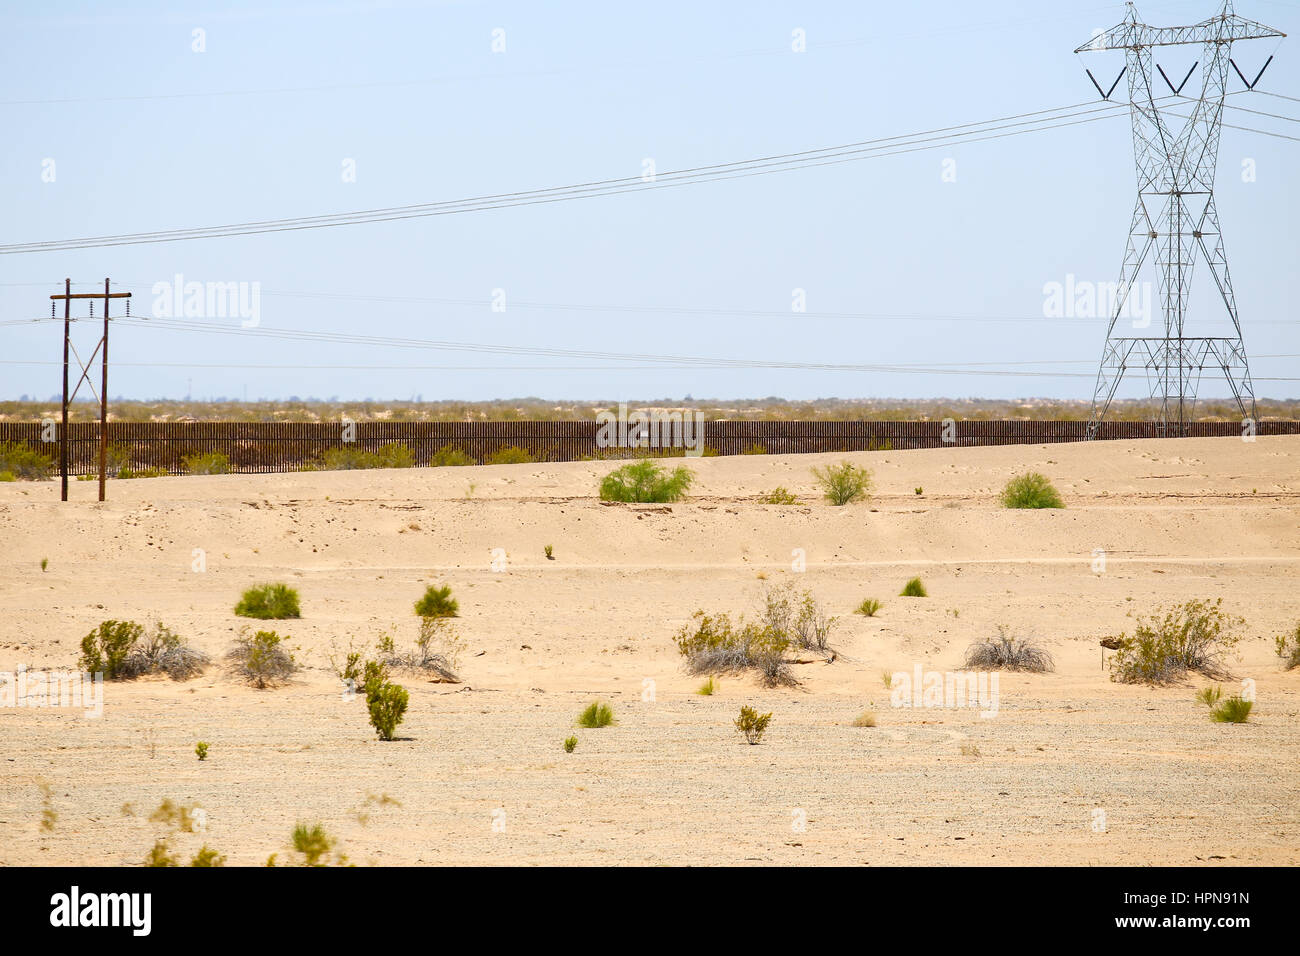 Winterhaven, California, USA - May 26, 2015: Fence in the desert at the U.S.-Mexico border. - Stock Image